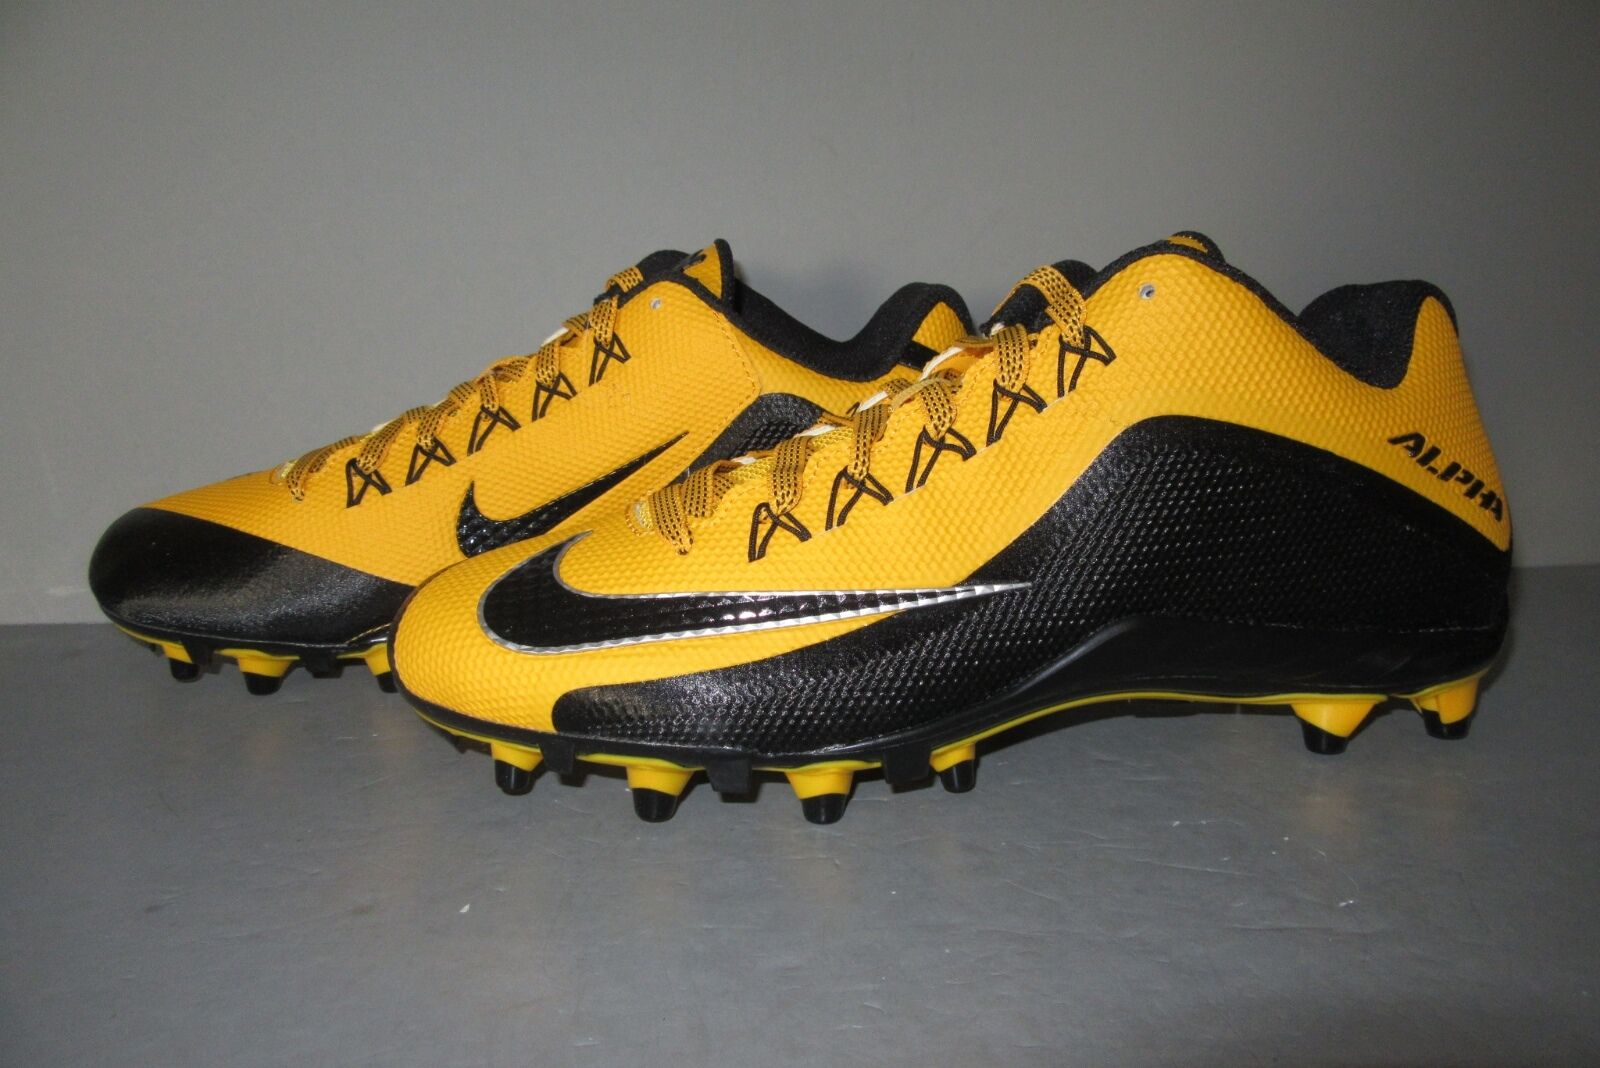 Nike PF Alpha Pro 2 TD PF Nike Football Molded Cleats/Shoes 729445-725 Size 13 a90838